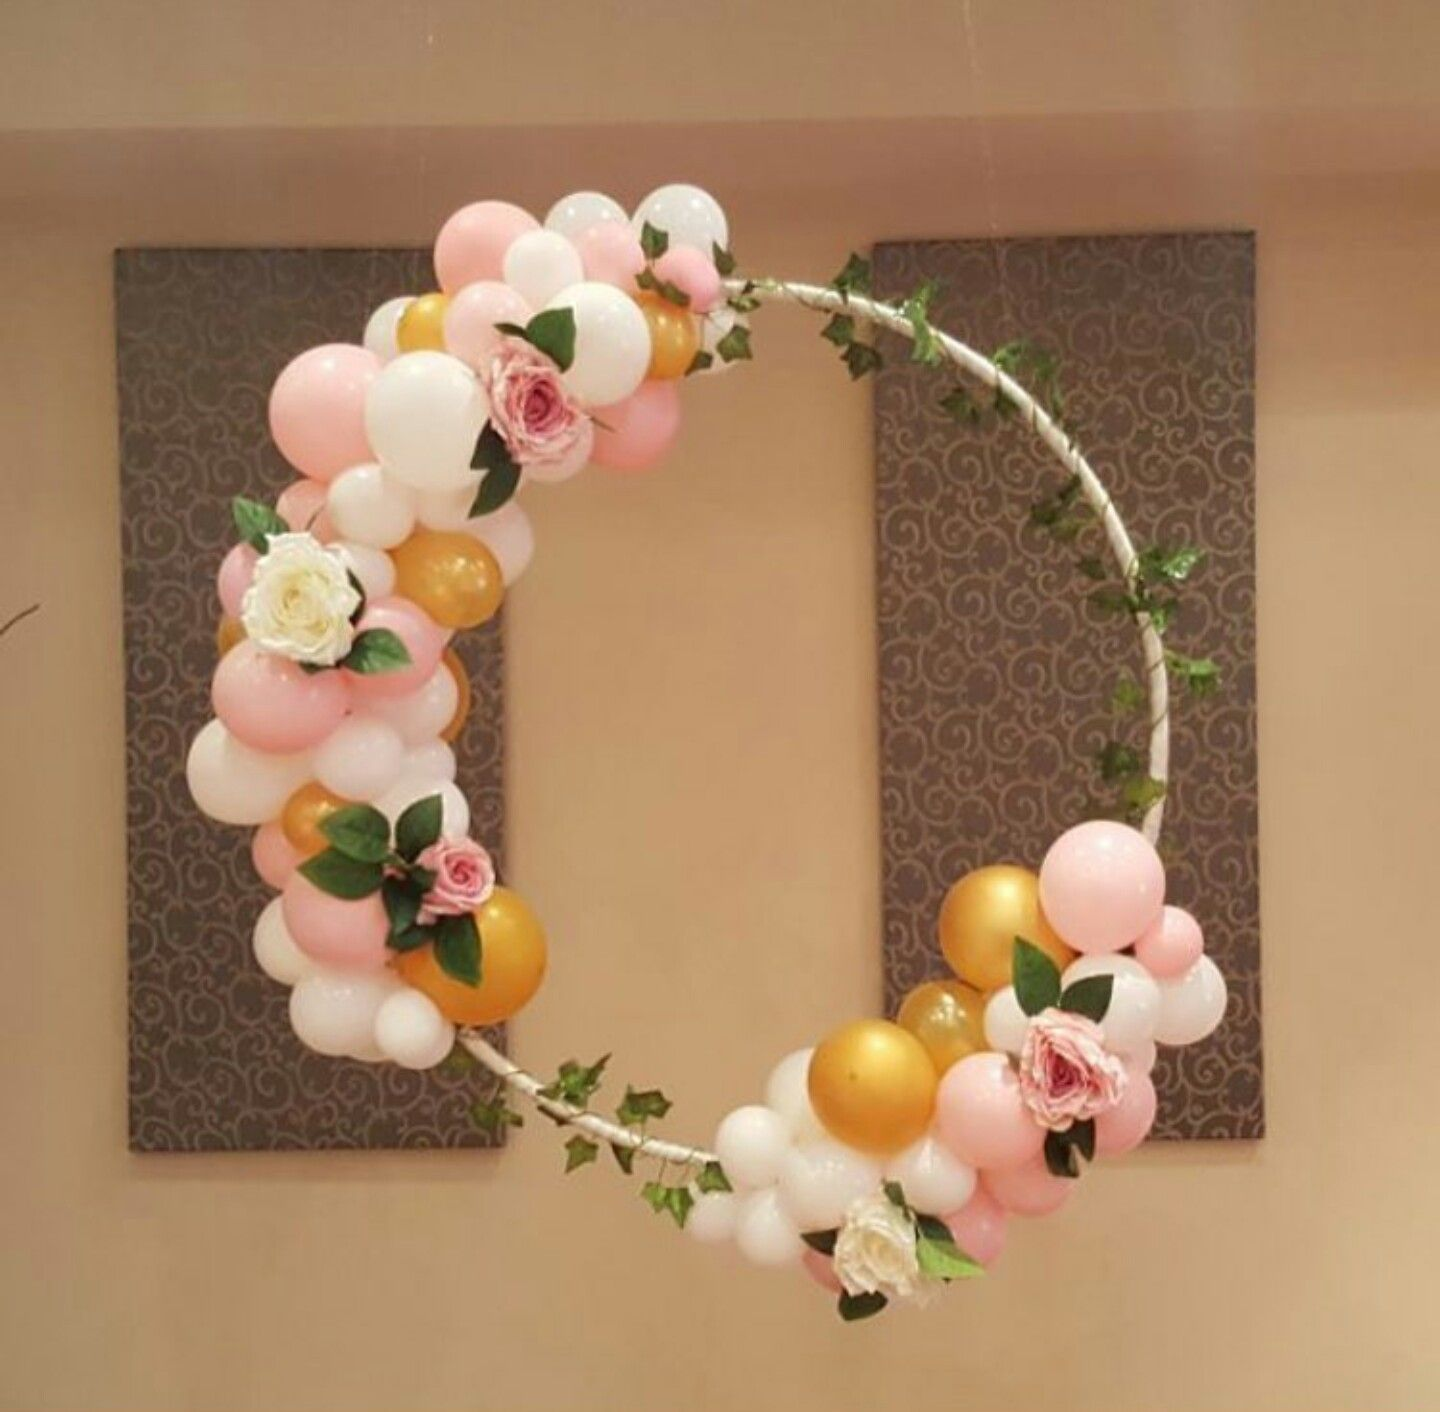 Floral balloon ring pinteres for Balloon decoration ideas diy